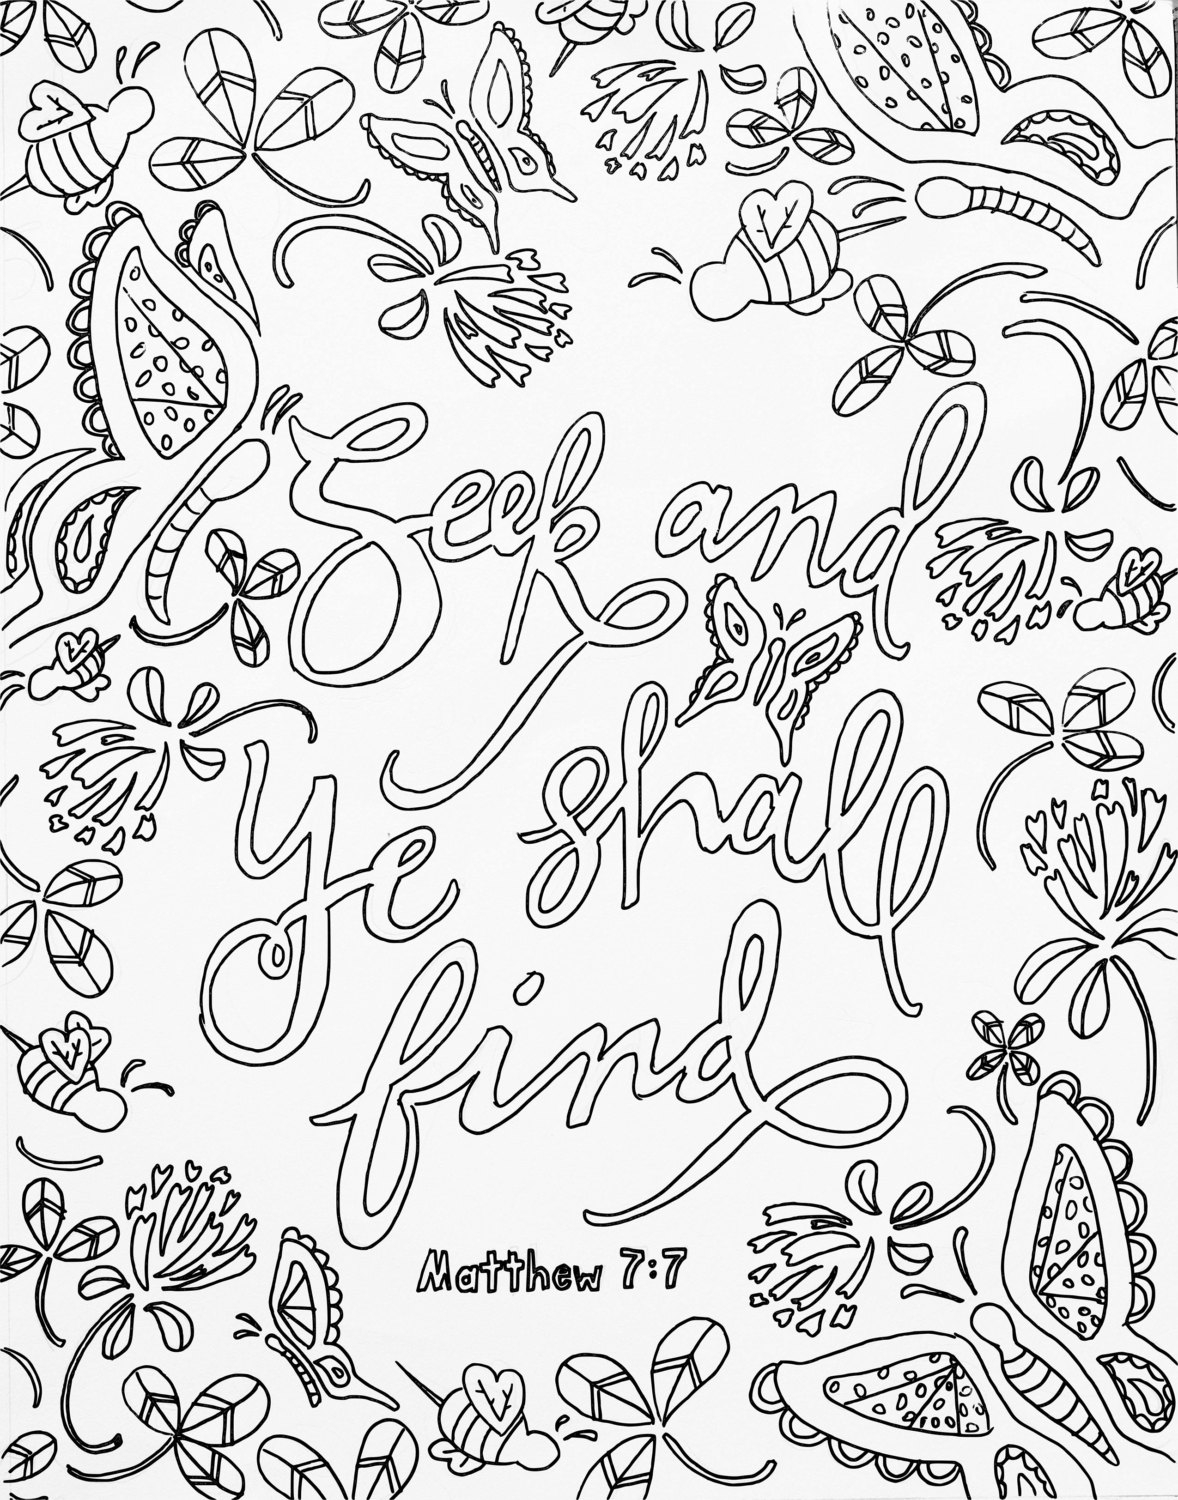 Free scripture coloring pages download free coloring sheets for Printable bible coloring pages kids